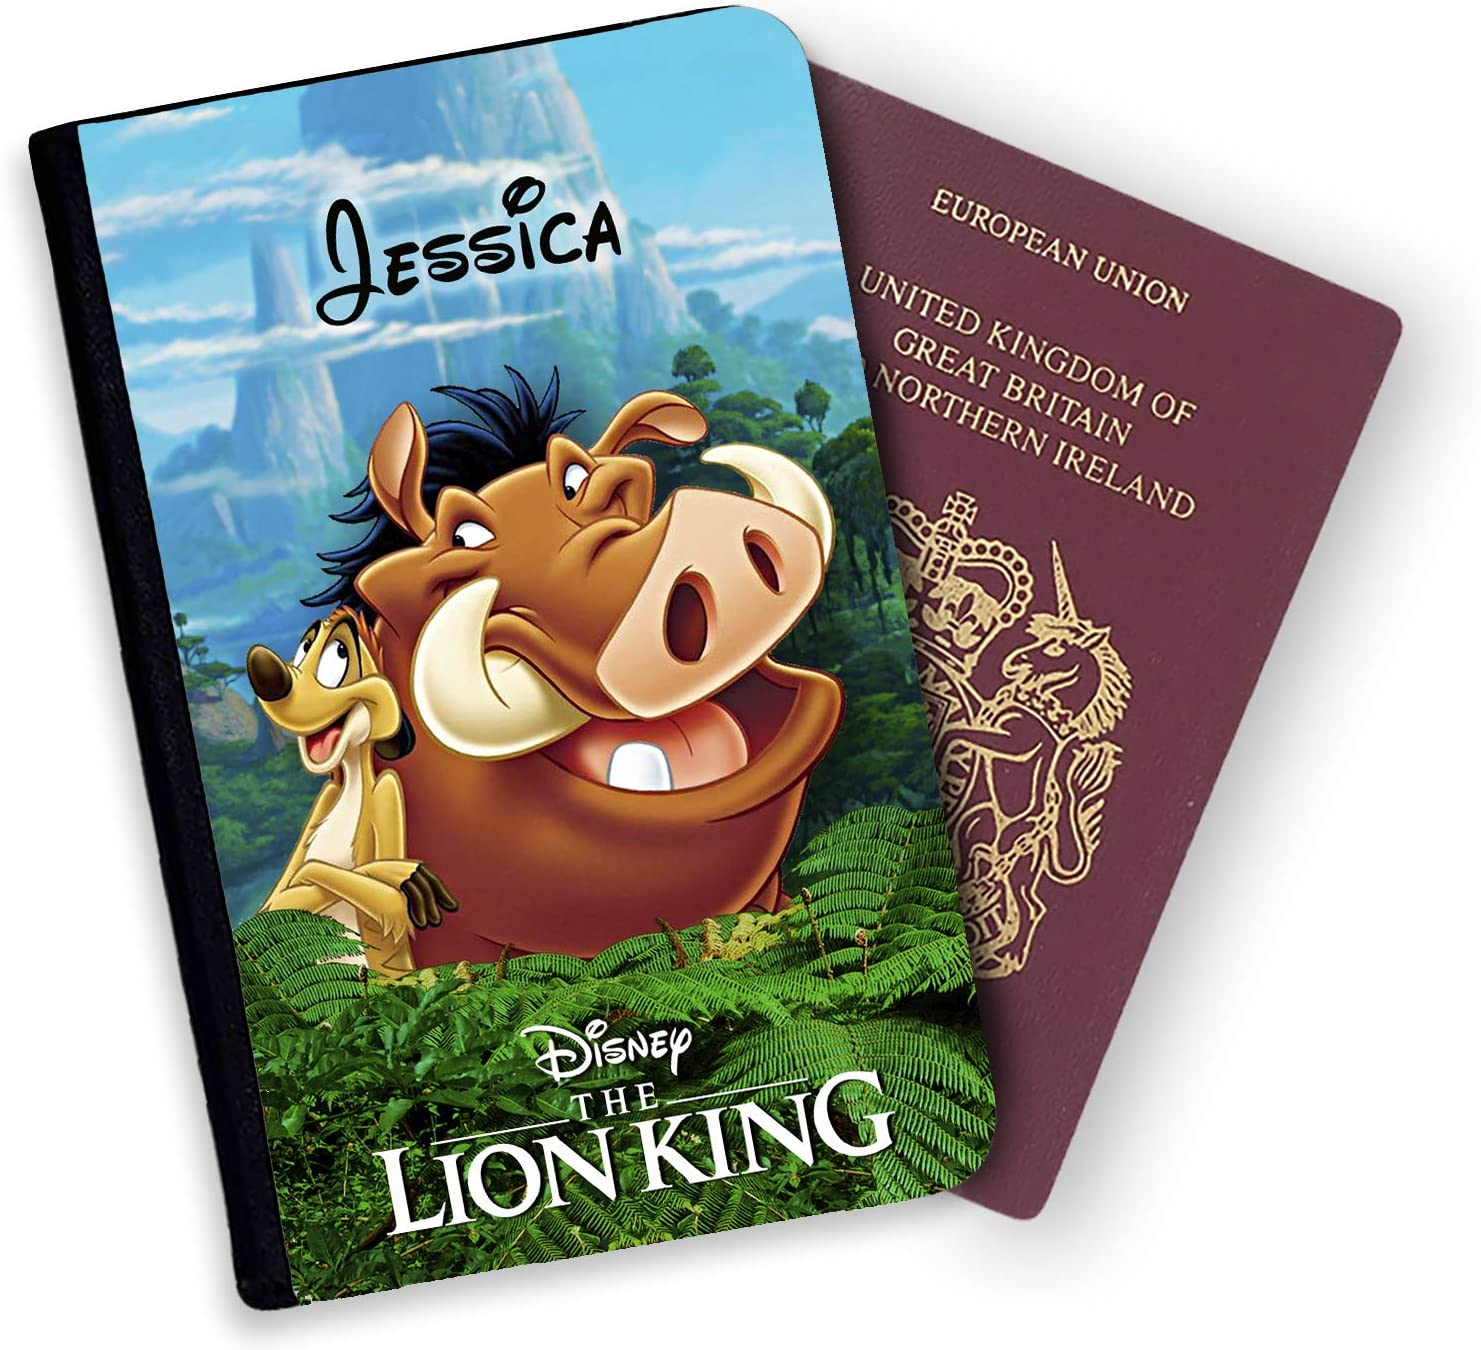 Porte-Passeport et /étiquette de Bagage Personnalisable Disney Le Roi Lion Multicolore Multicolore Luggage Tag